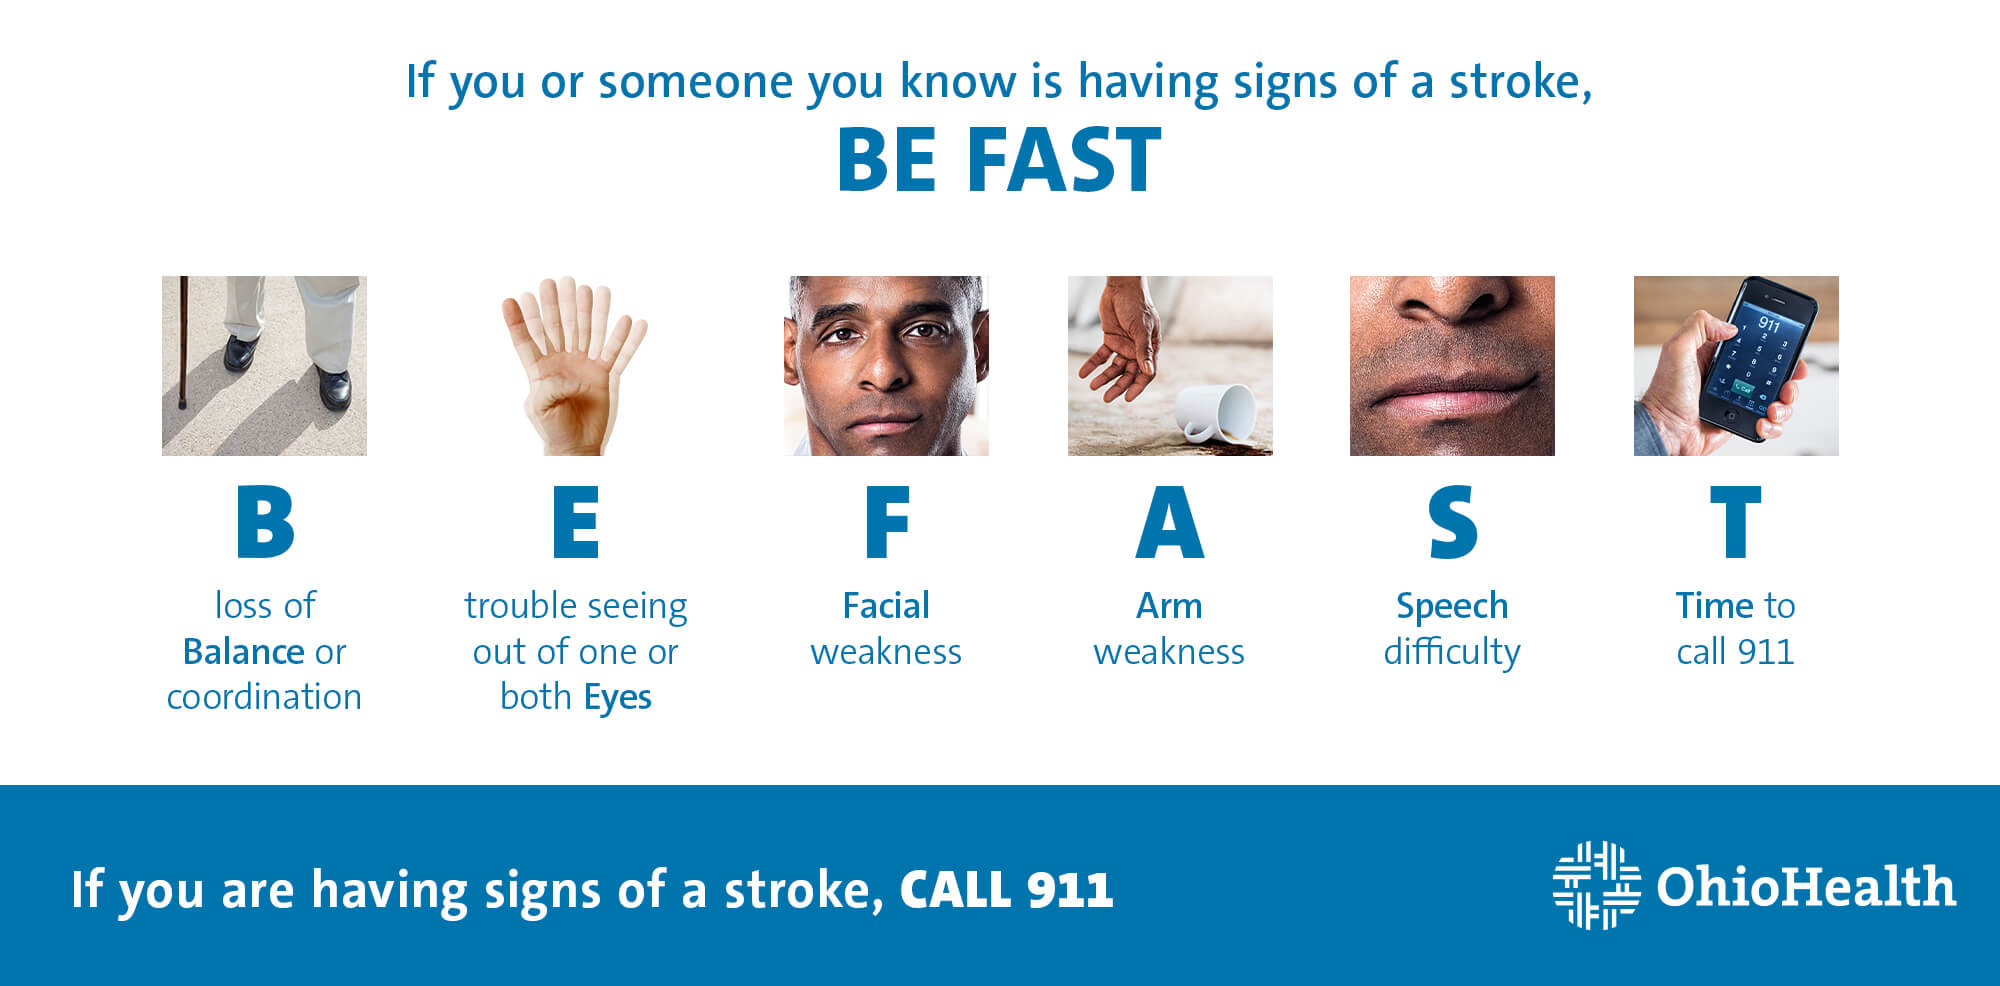 Infographic depicting BE FAST strategy for knowing signs of a stroke